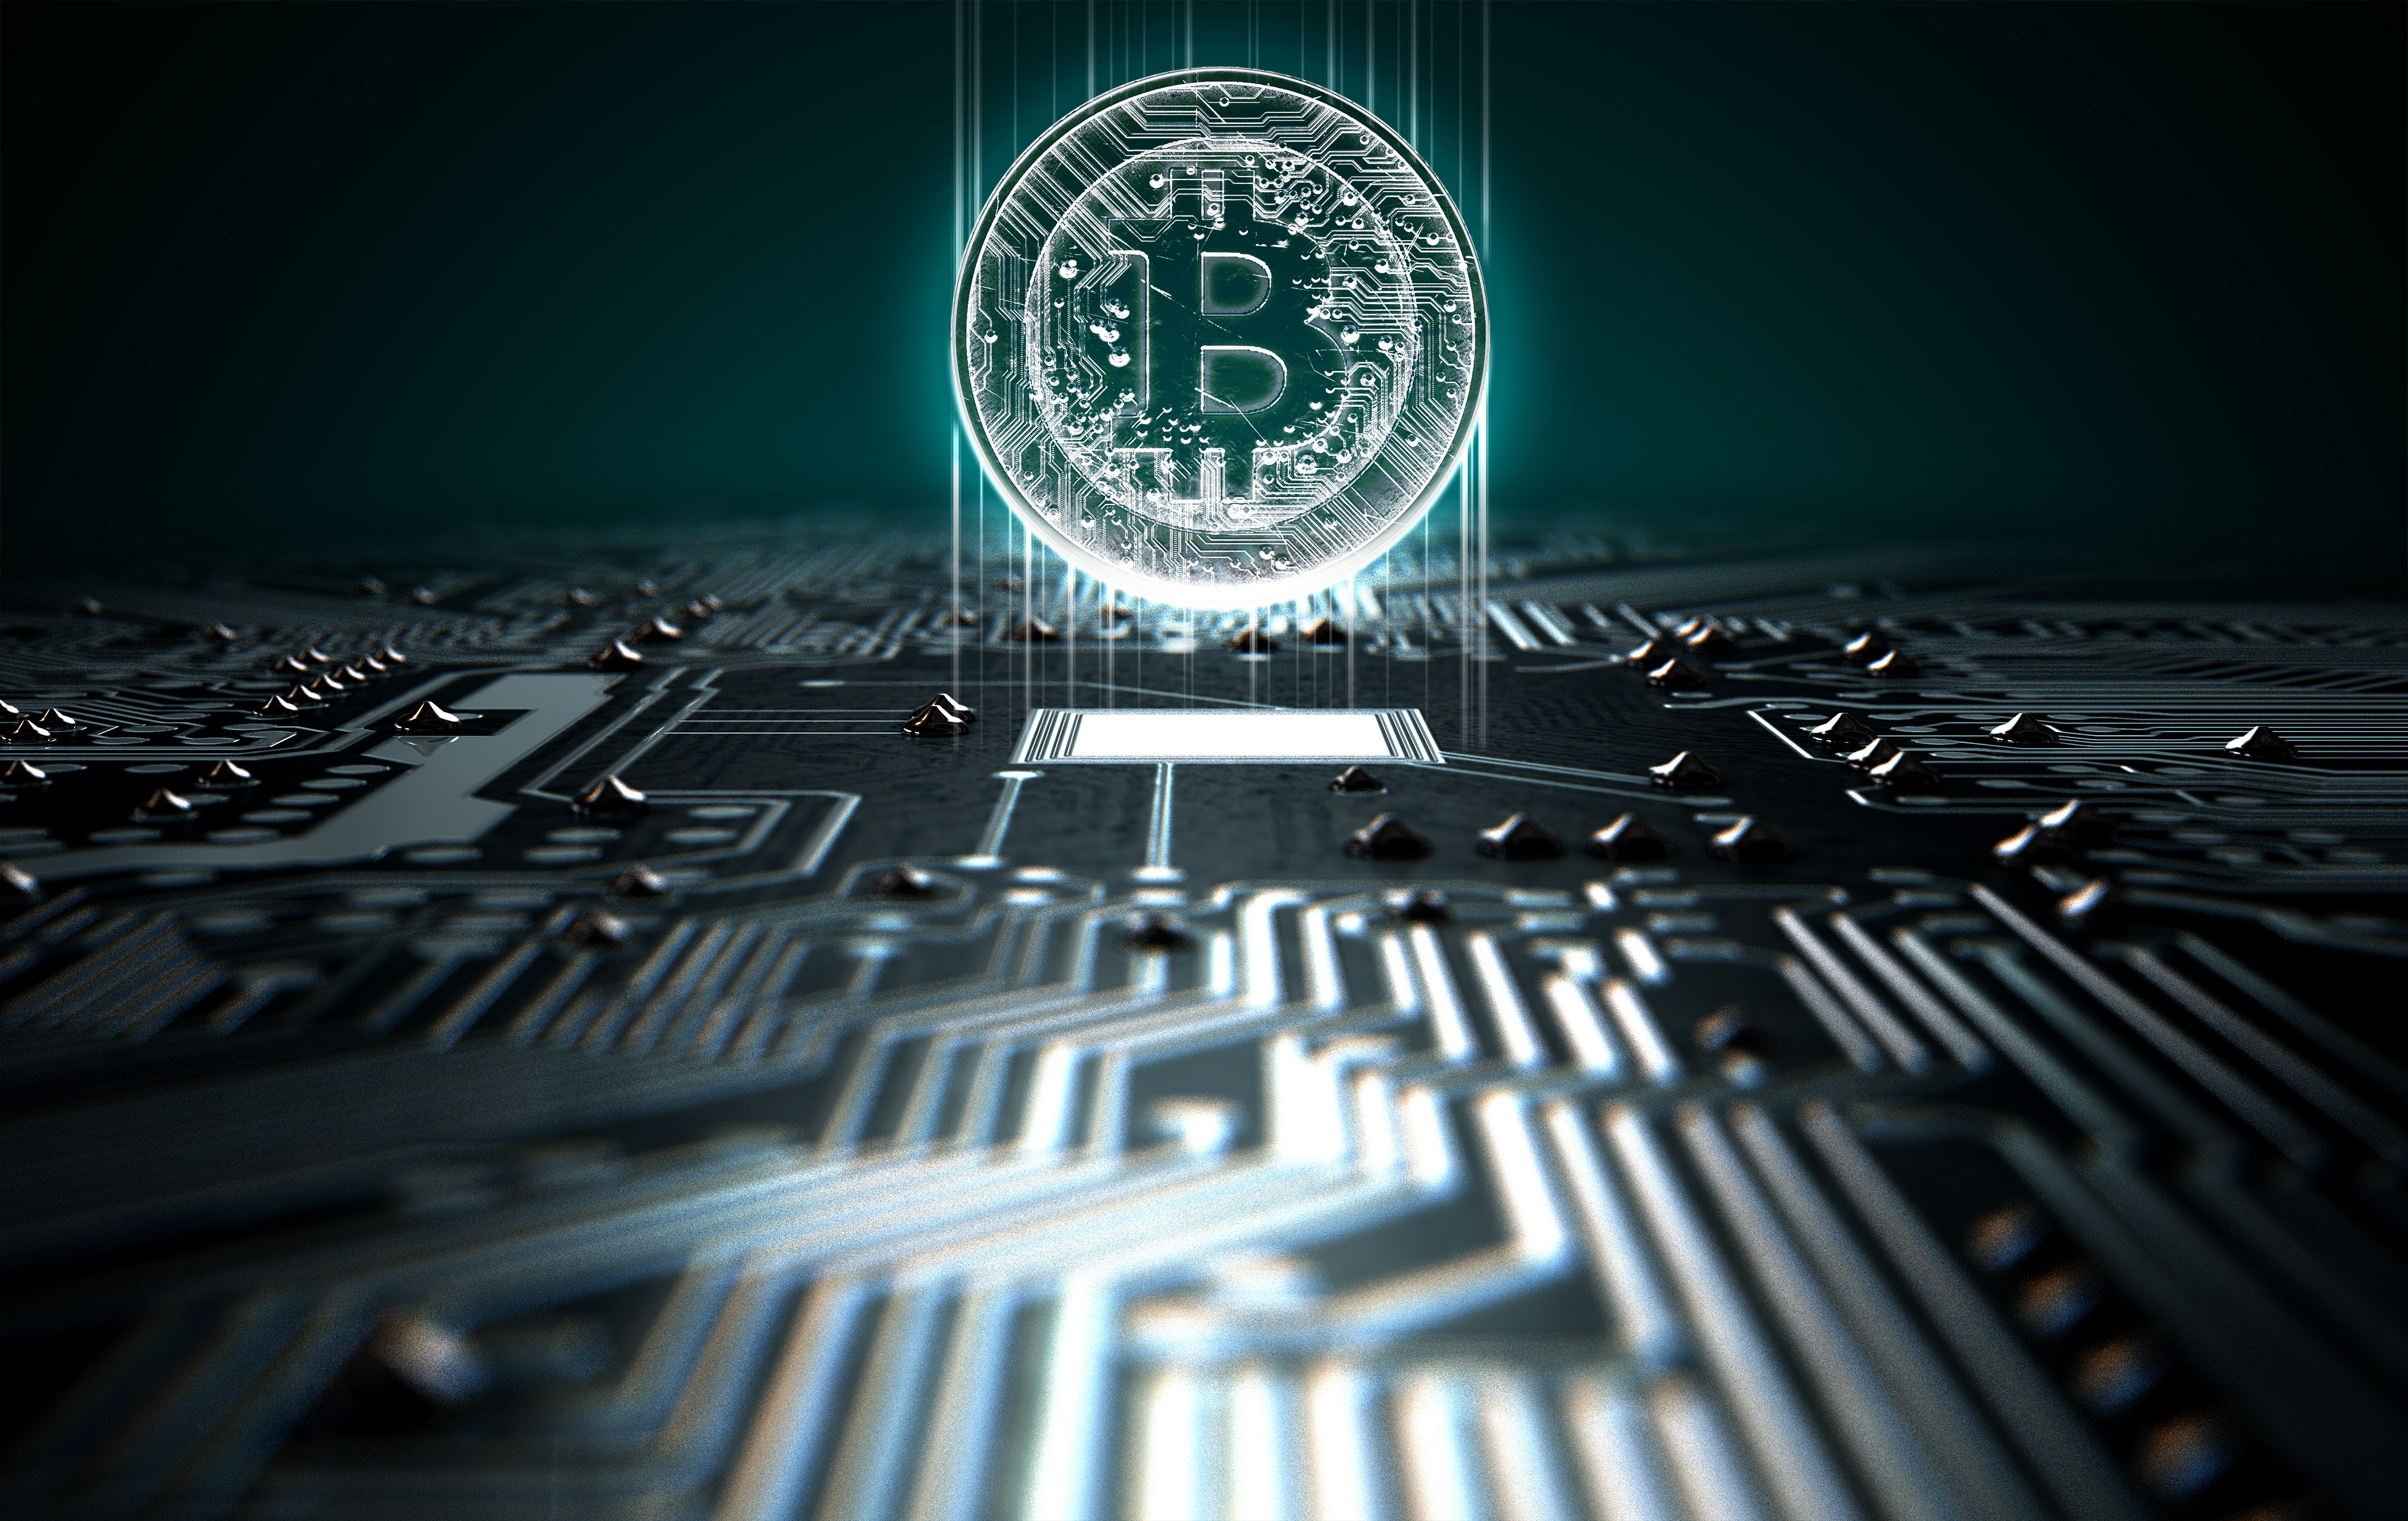 cryptocurrency wallets remains limited